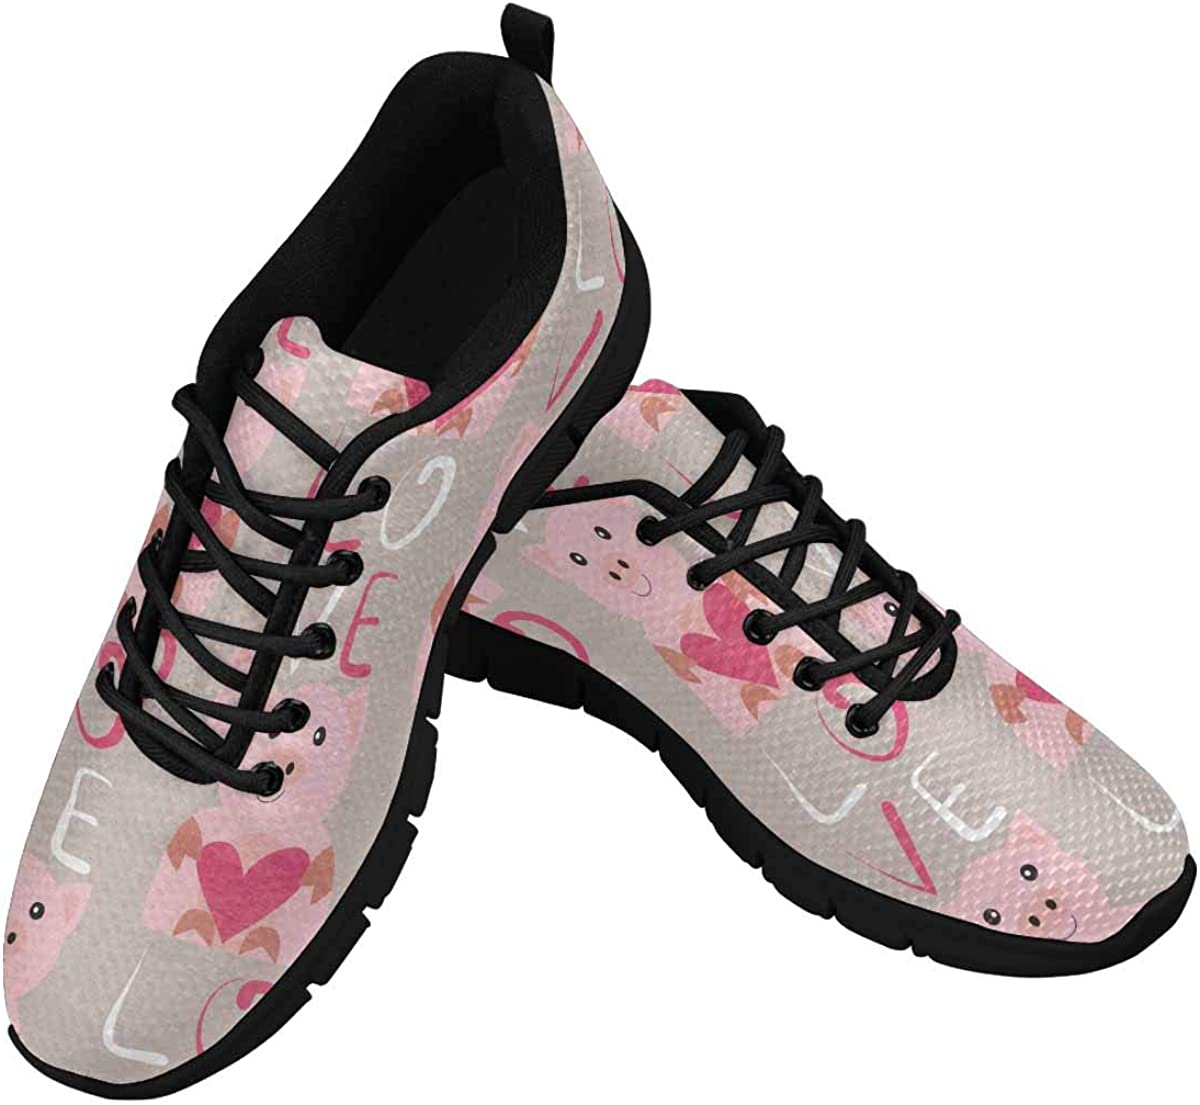 INTERESTPRINT Pig with Heart Pattern Women's Lace Up Running Comfort Sports Sneakers